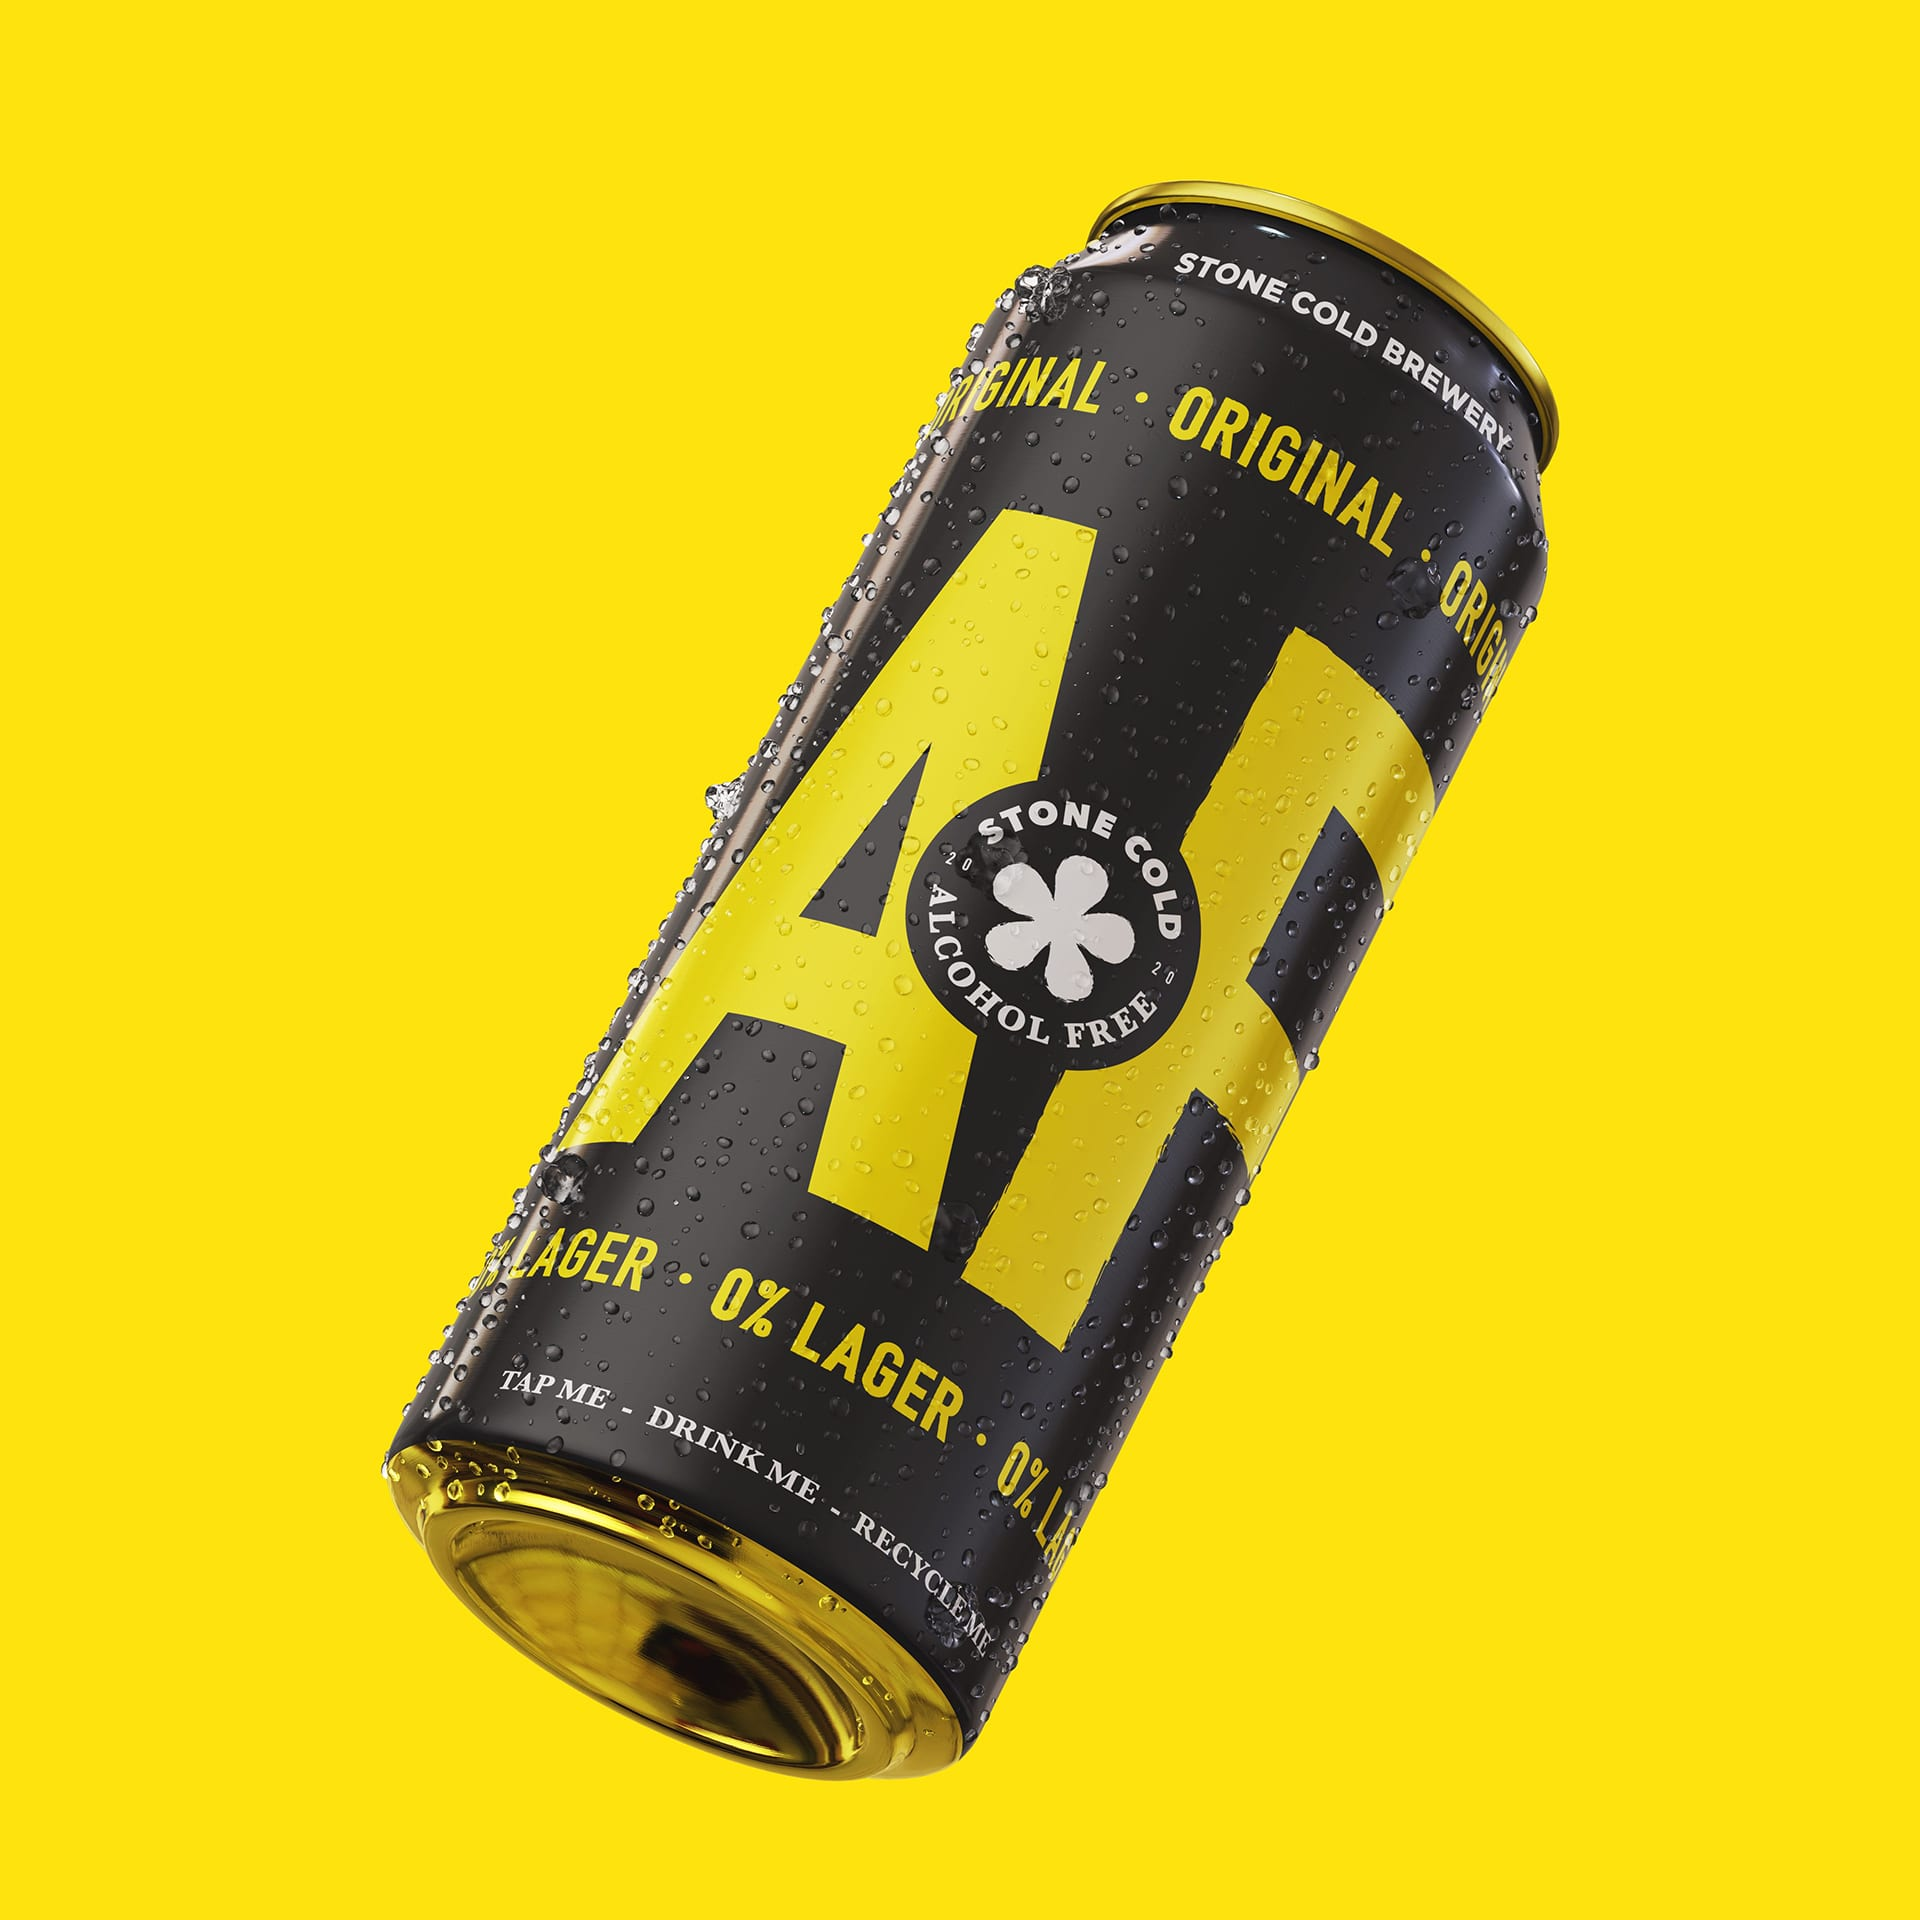 Stone Cold Alcohol Free Beer - Original 0% Lager